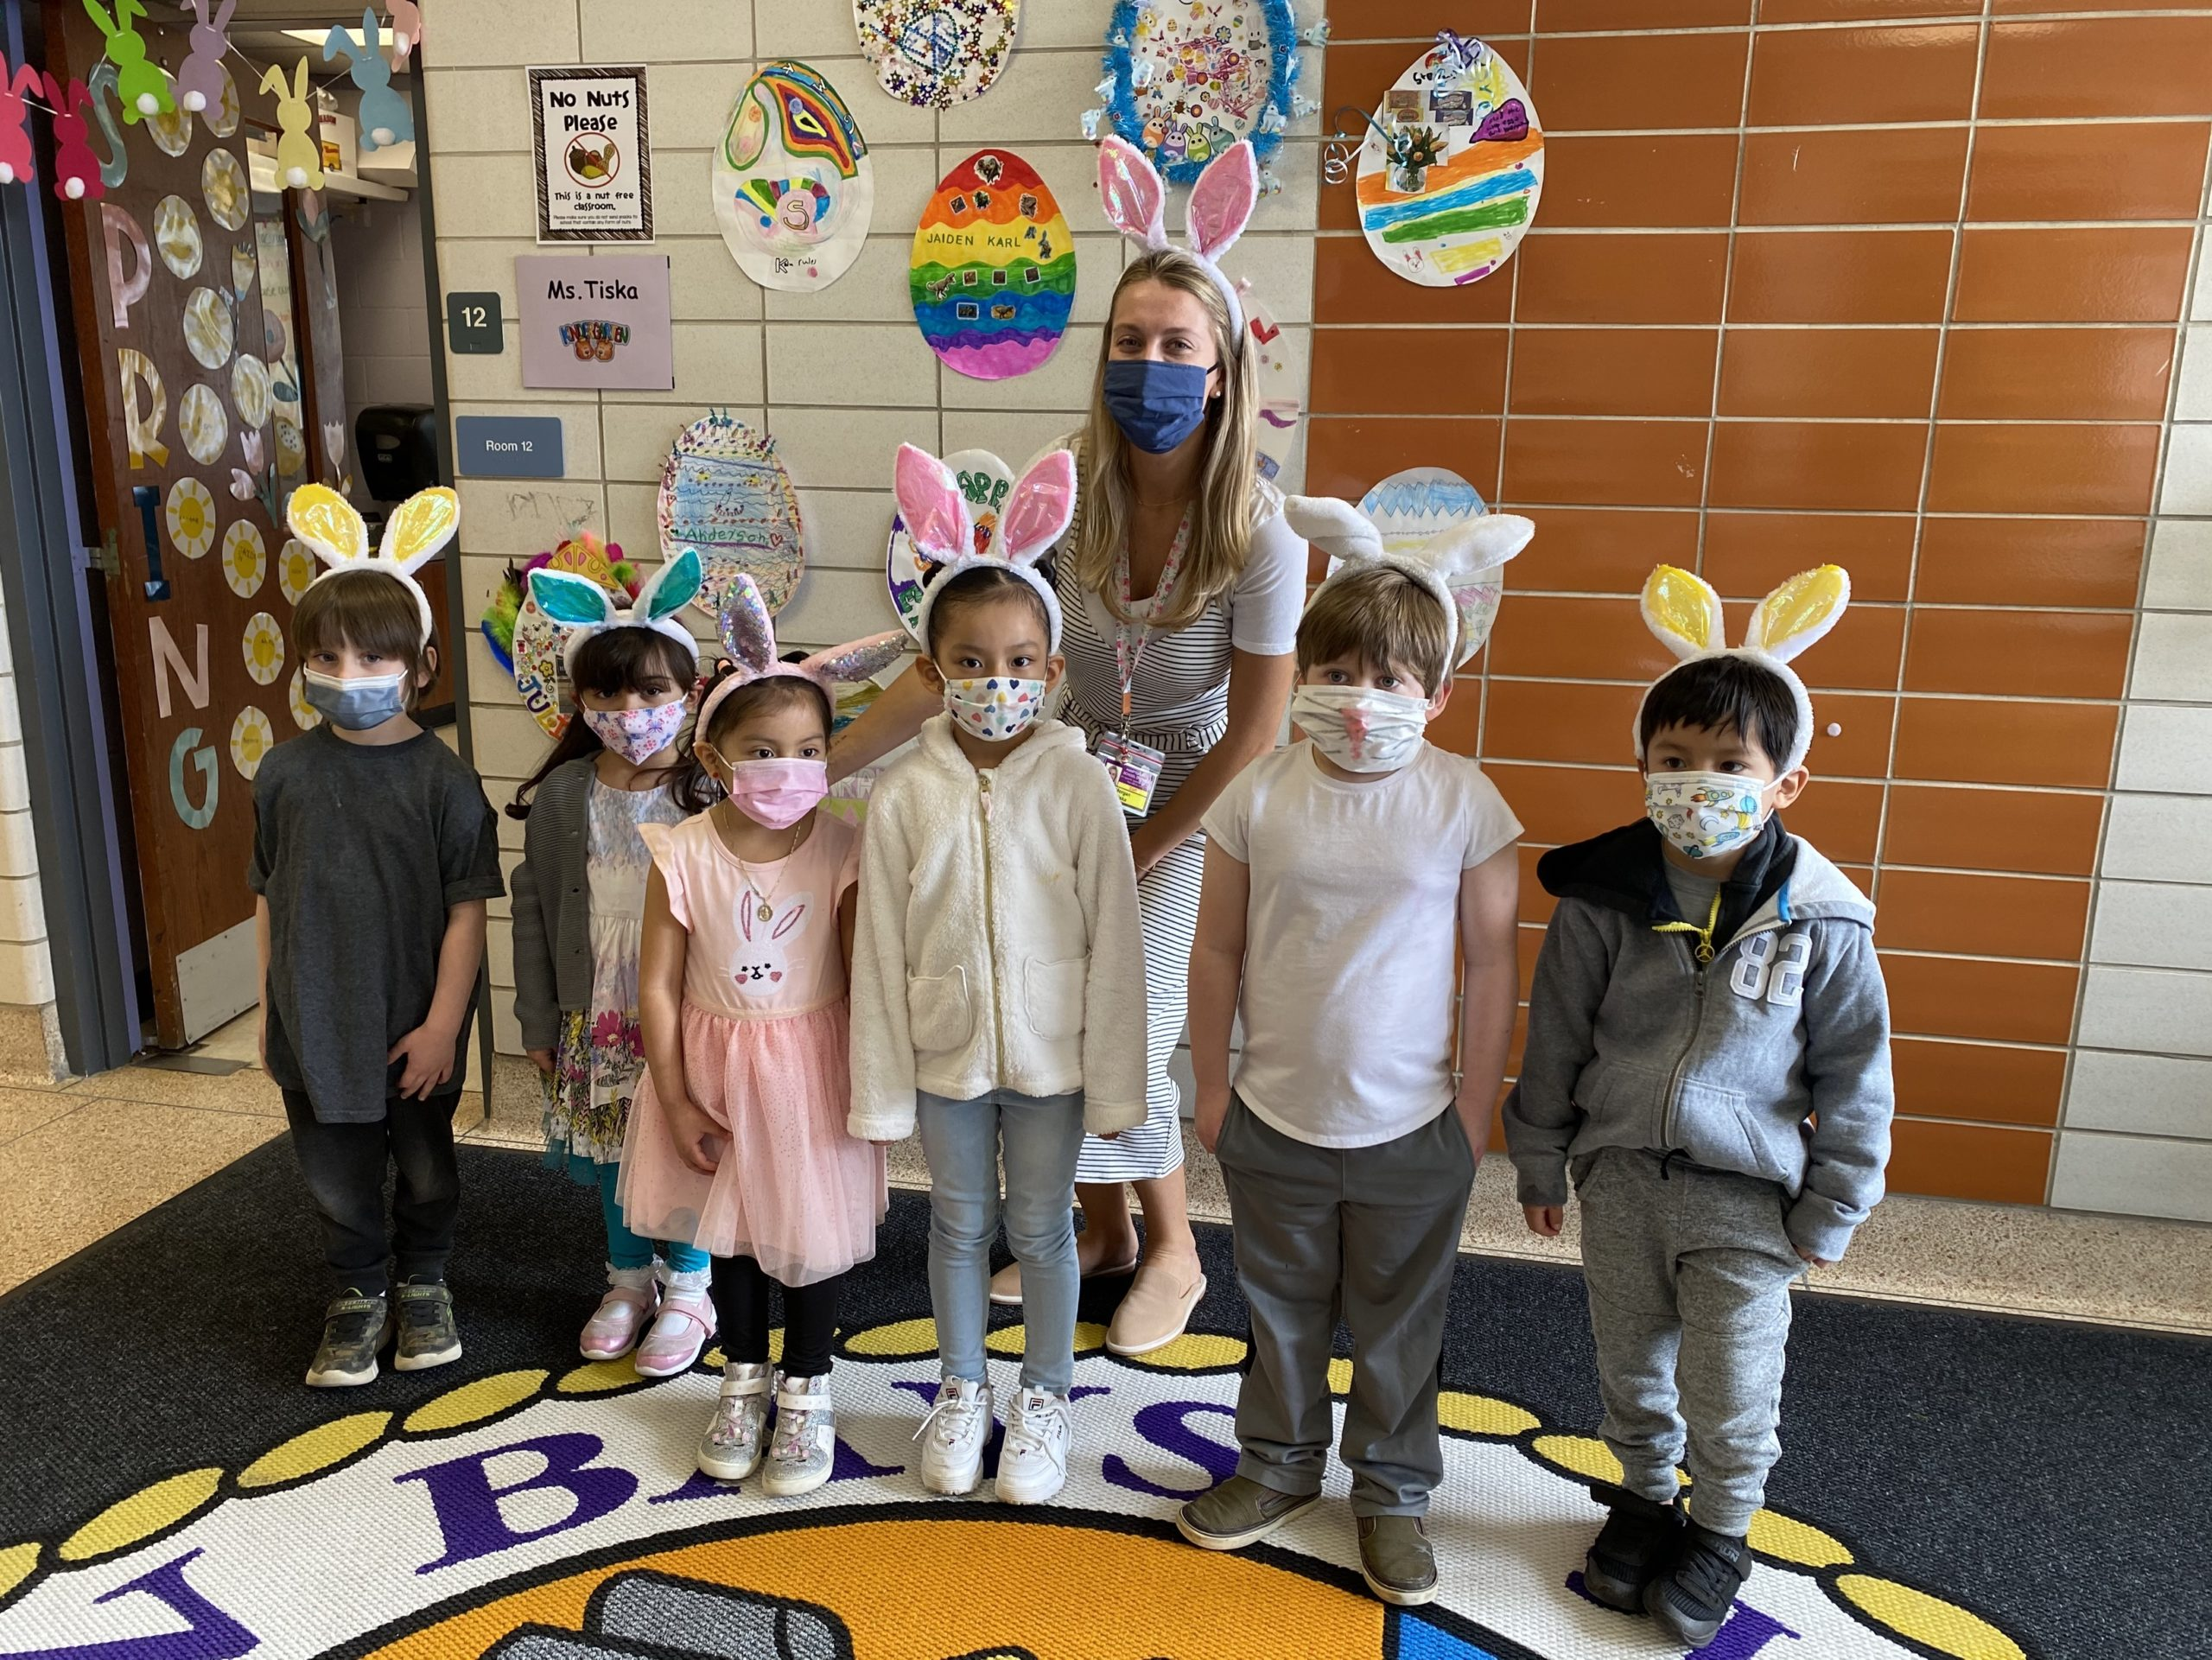 The little bunnies in Morgan Tiska's kindergarten class at Hampton Bays Elementary School were treated to an egg hunt on March 25. Out in the warm sun, the kindergartners searched their school's grounds for colorful eggs, which they placed in paper bags that they had decorated for the occasion.